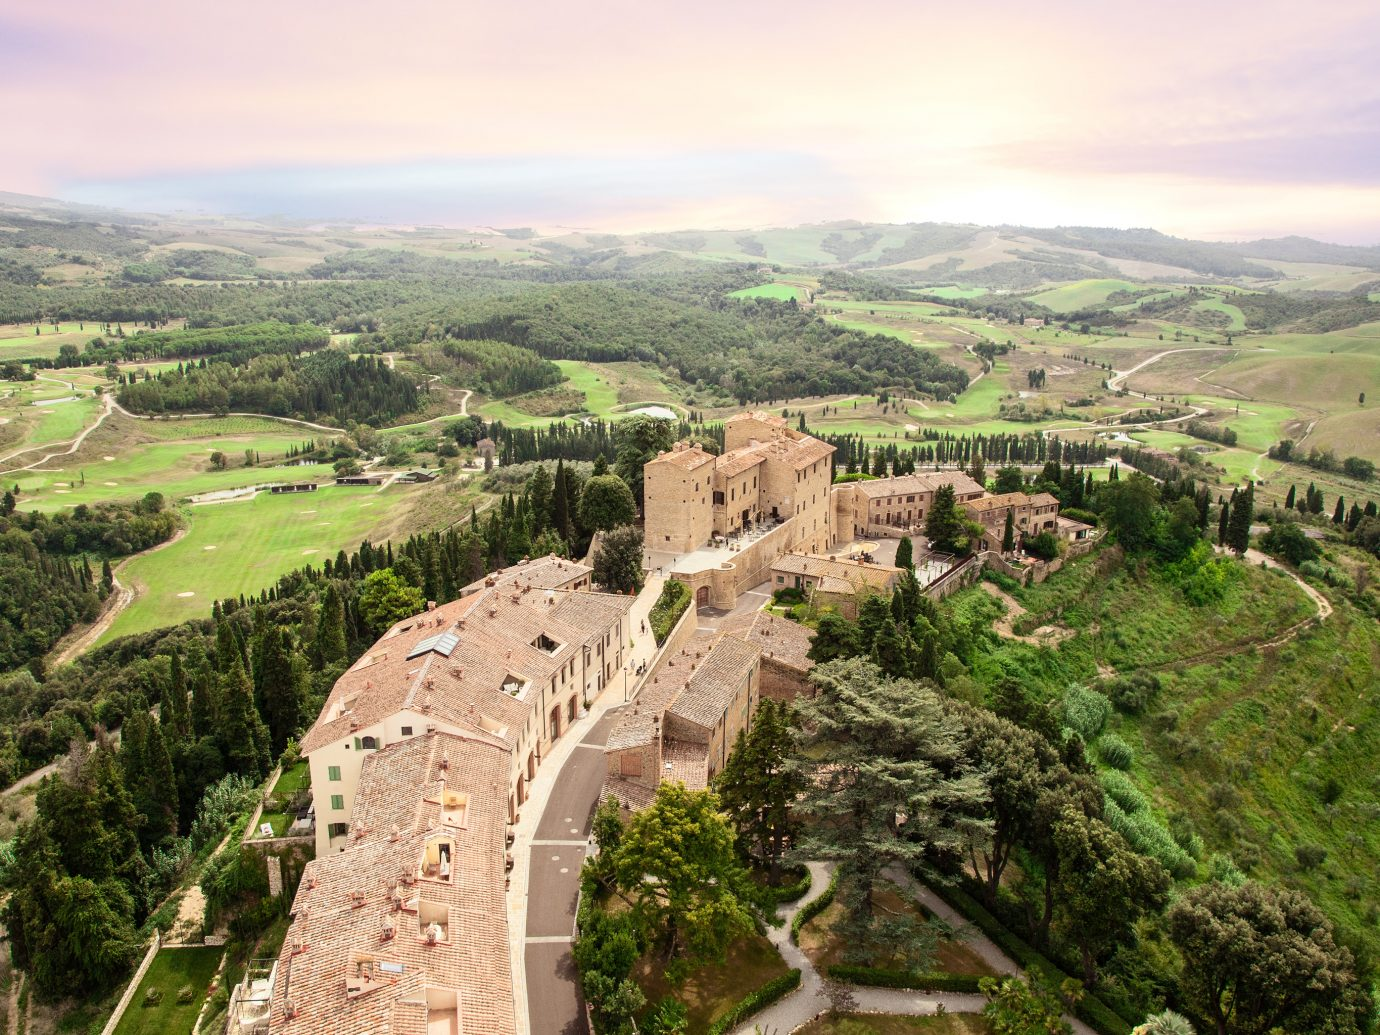 Aerial view of Hotel Il Castelfalfi in Tuscany